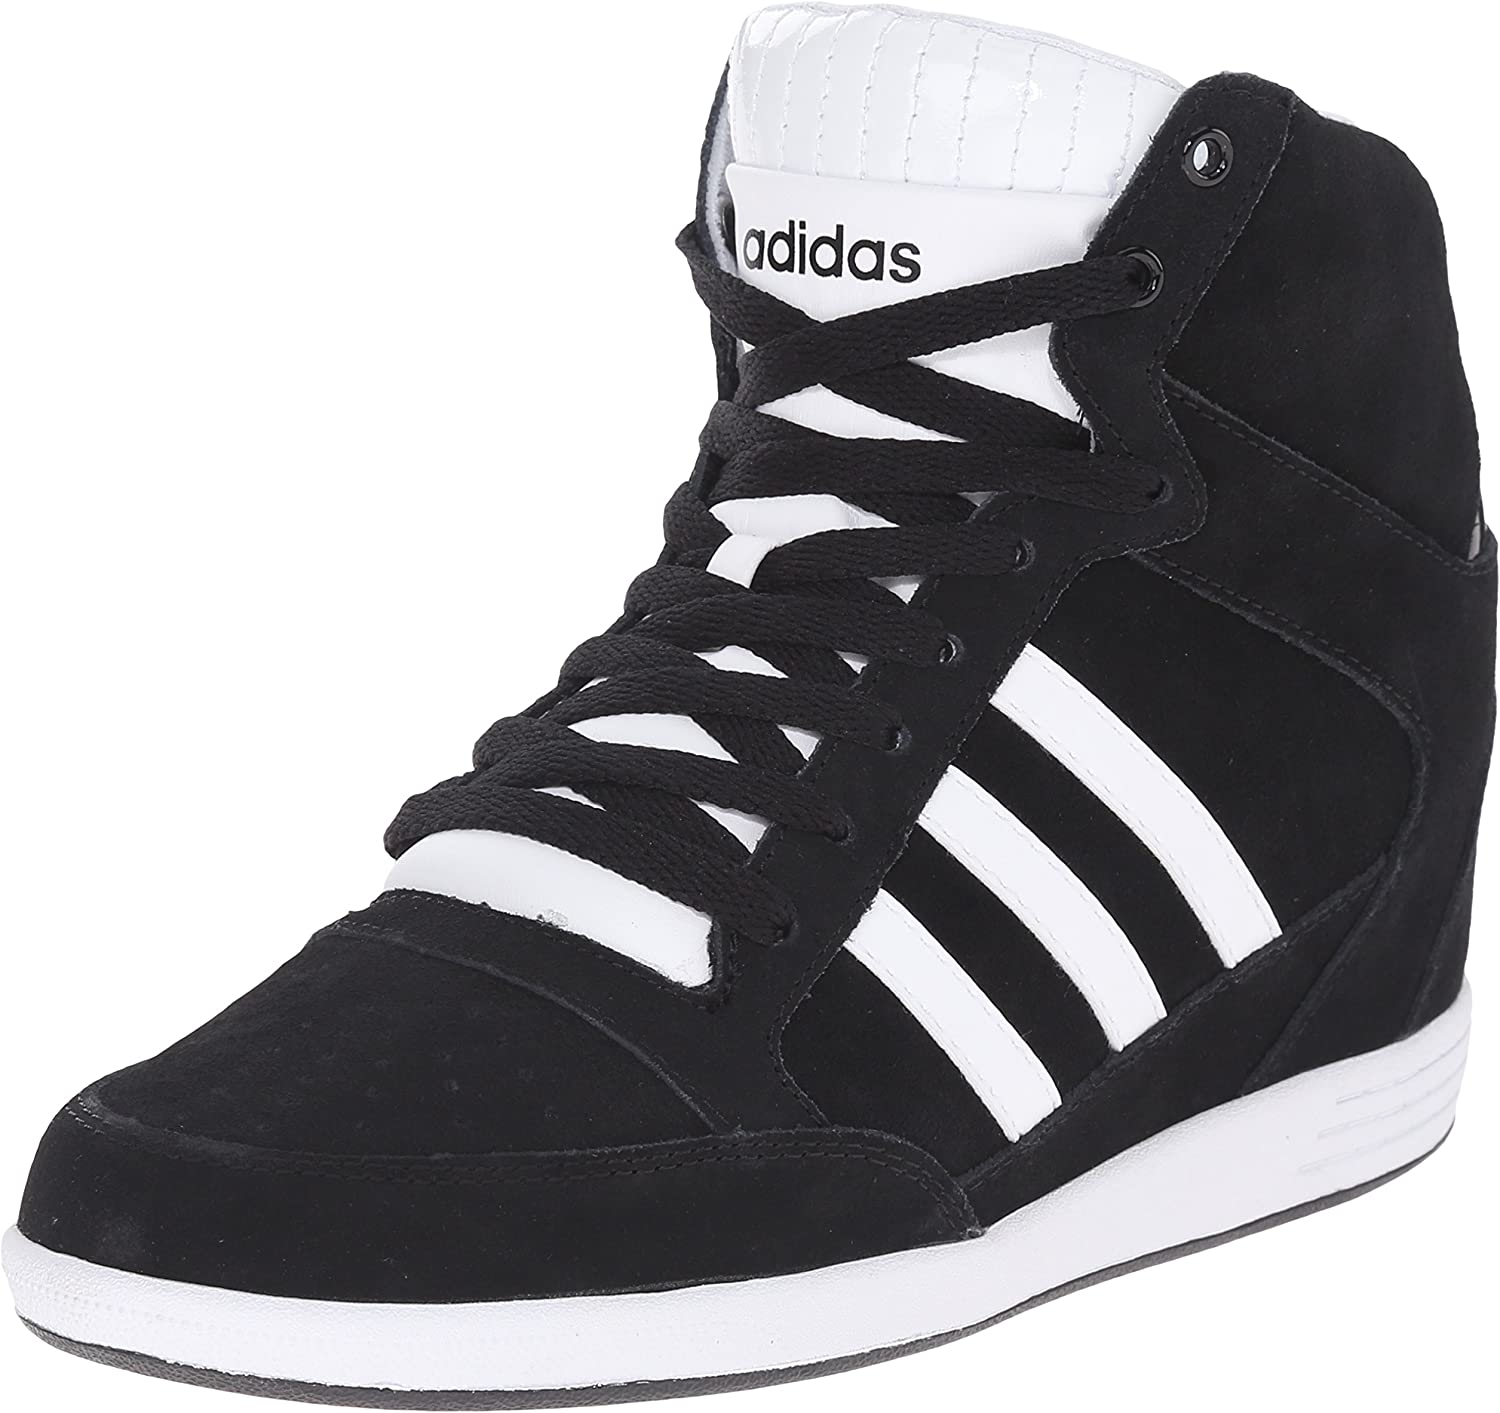 NEO Adidas Women's Super Wedge W High Top Fashion Sneaker